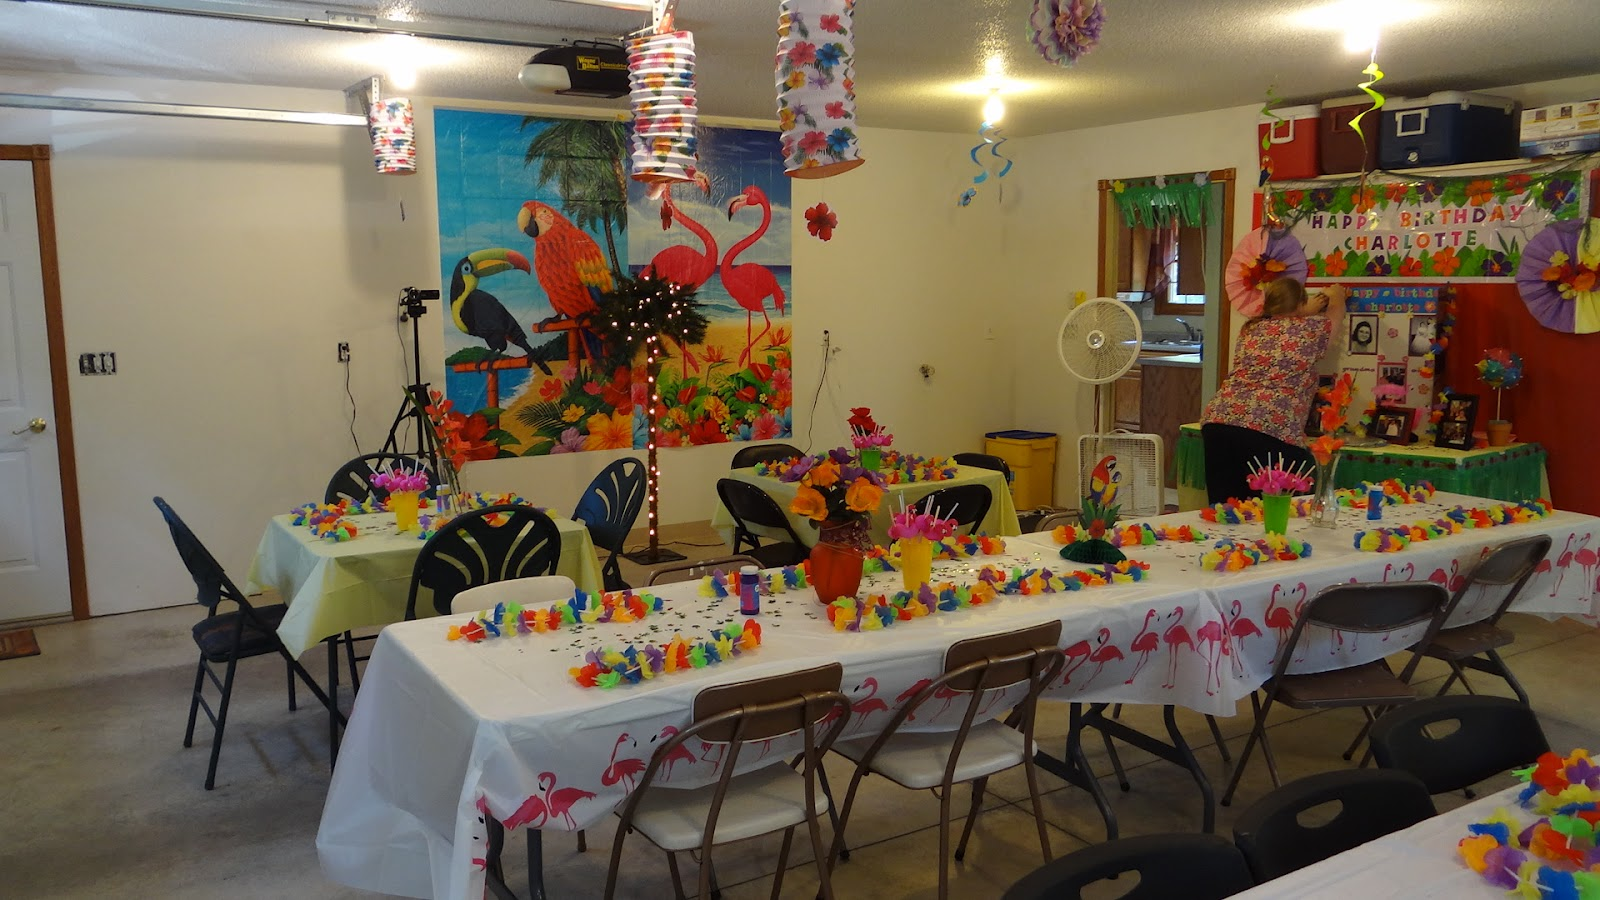 The blooming daisy granny 39 s 70th hawawiian birthday party for 70 birthday decoration ideas